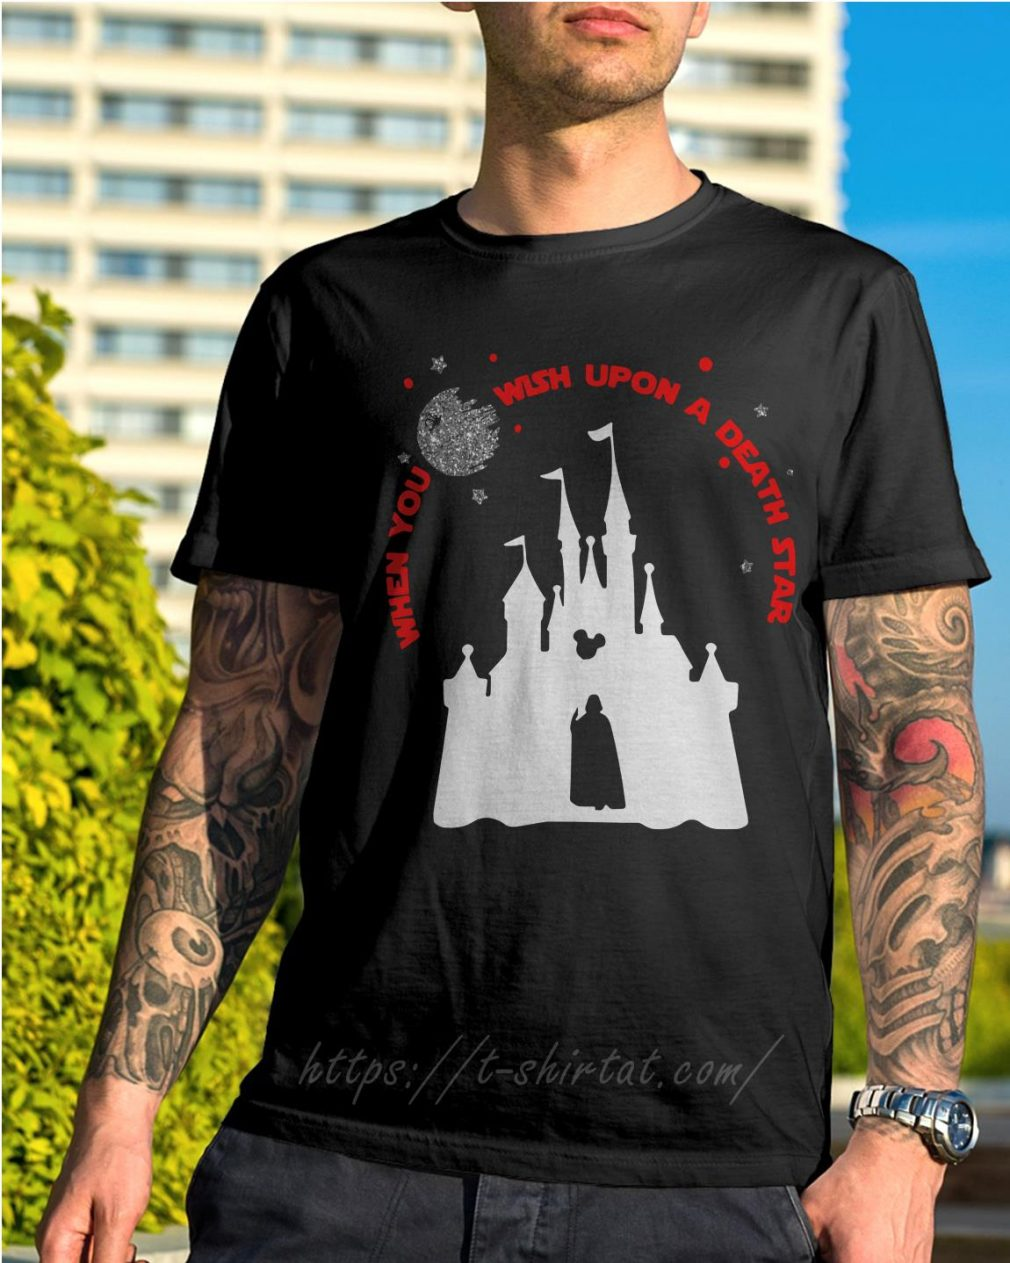 Vader Star wars and Castle Disney when you wish upon a death star shirt